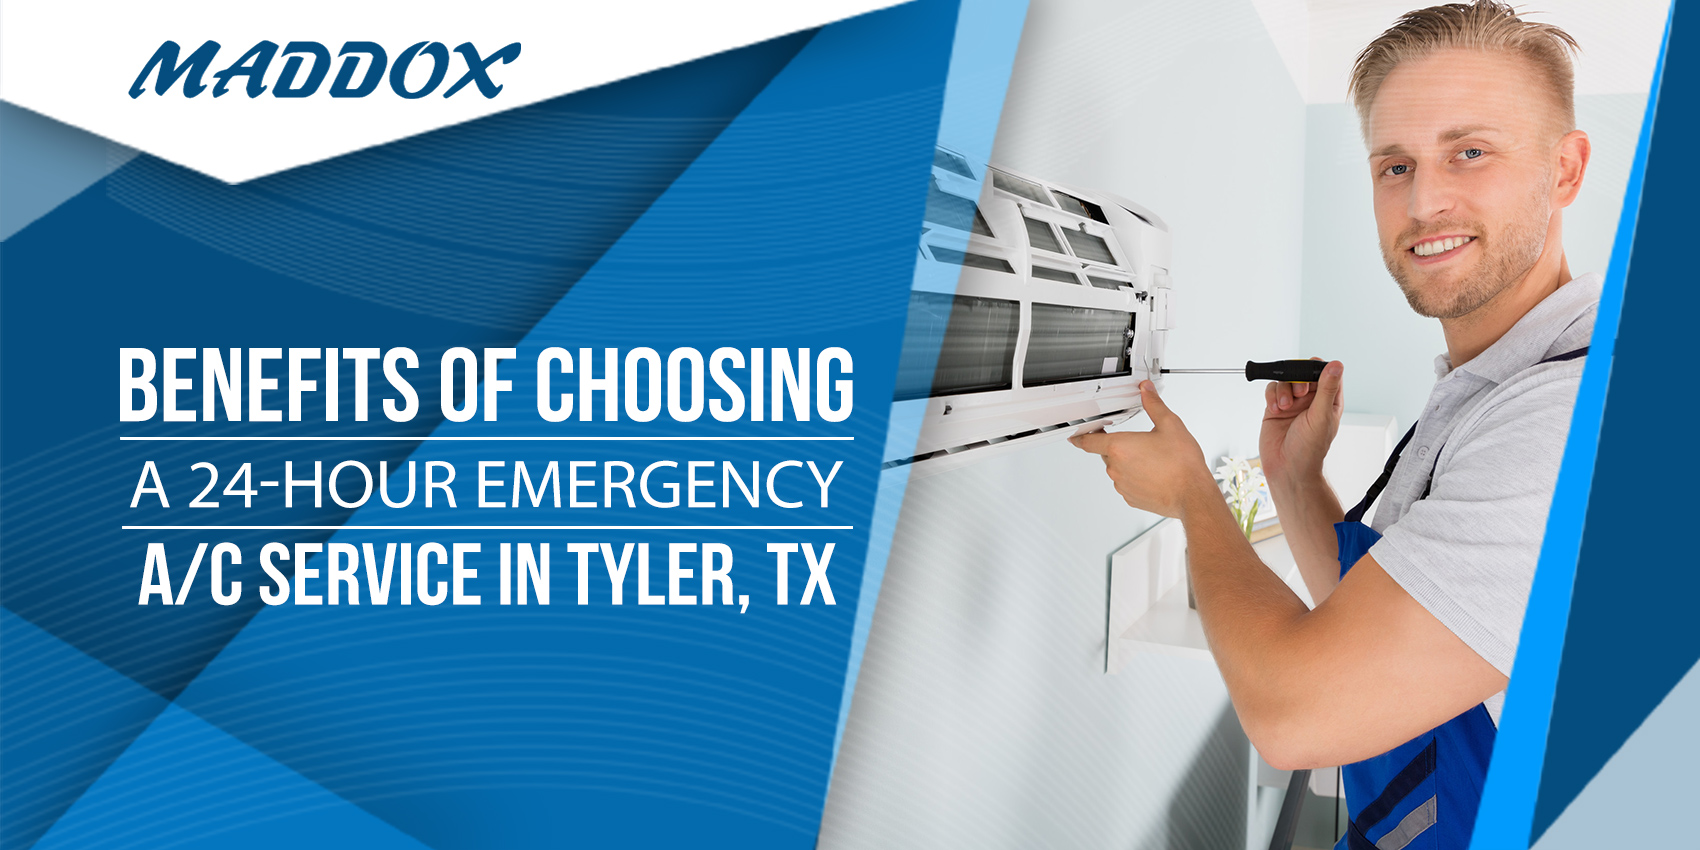 Benefits of Choosing a 24-Hour Emergency A/C Service in Tyler, TX